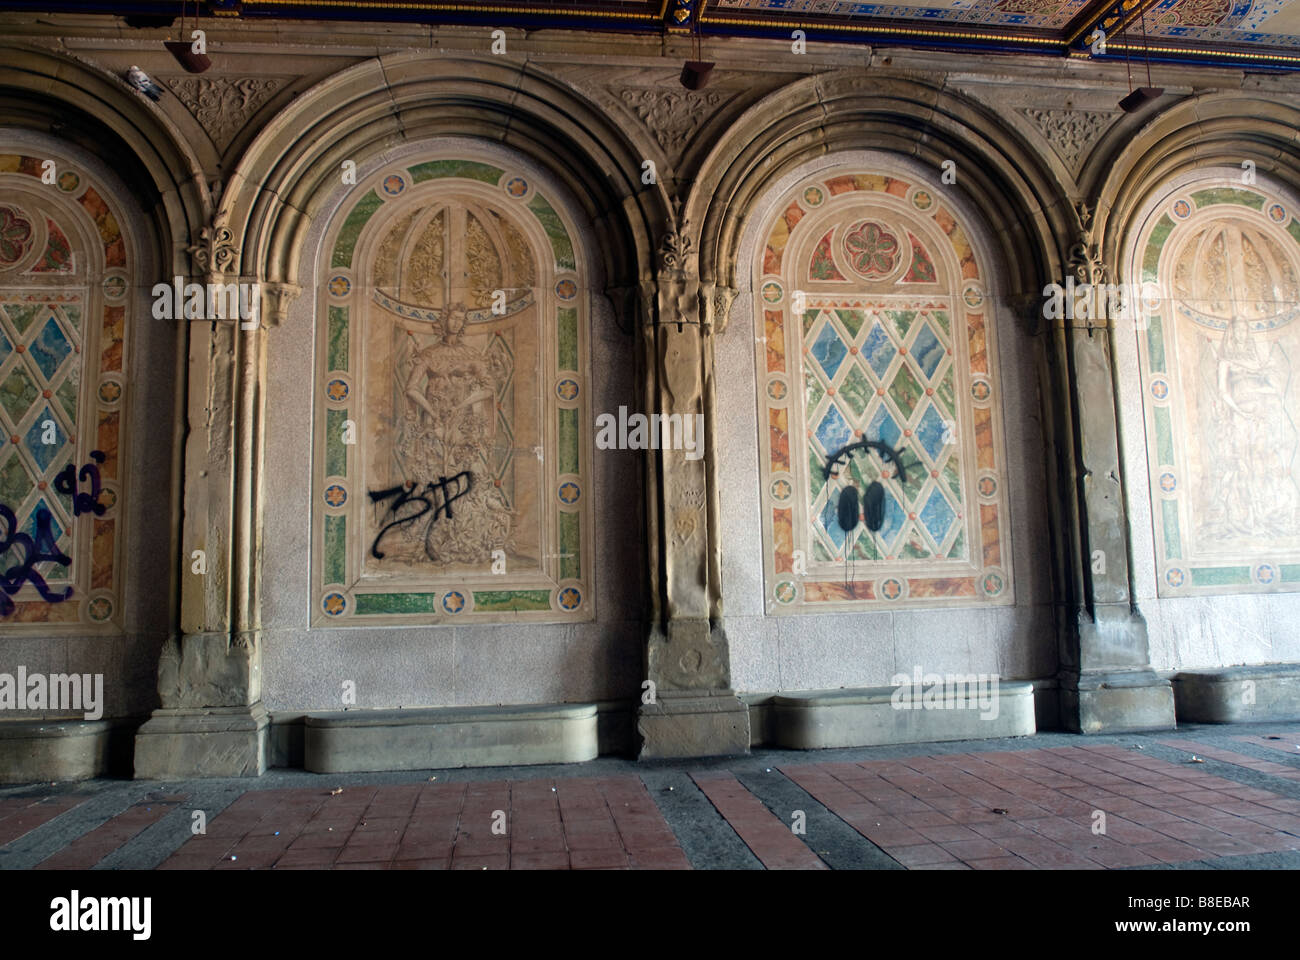 The Central Park Bethesda Terrace Arcade With The Restored